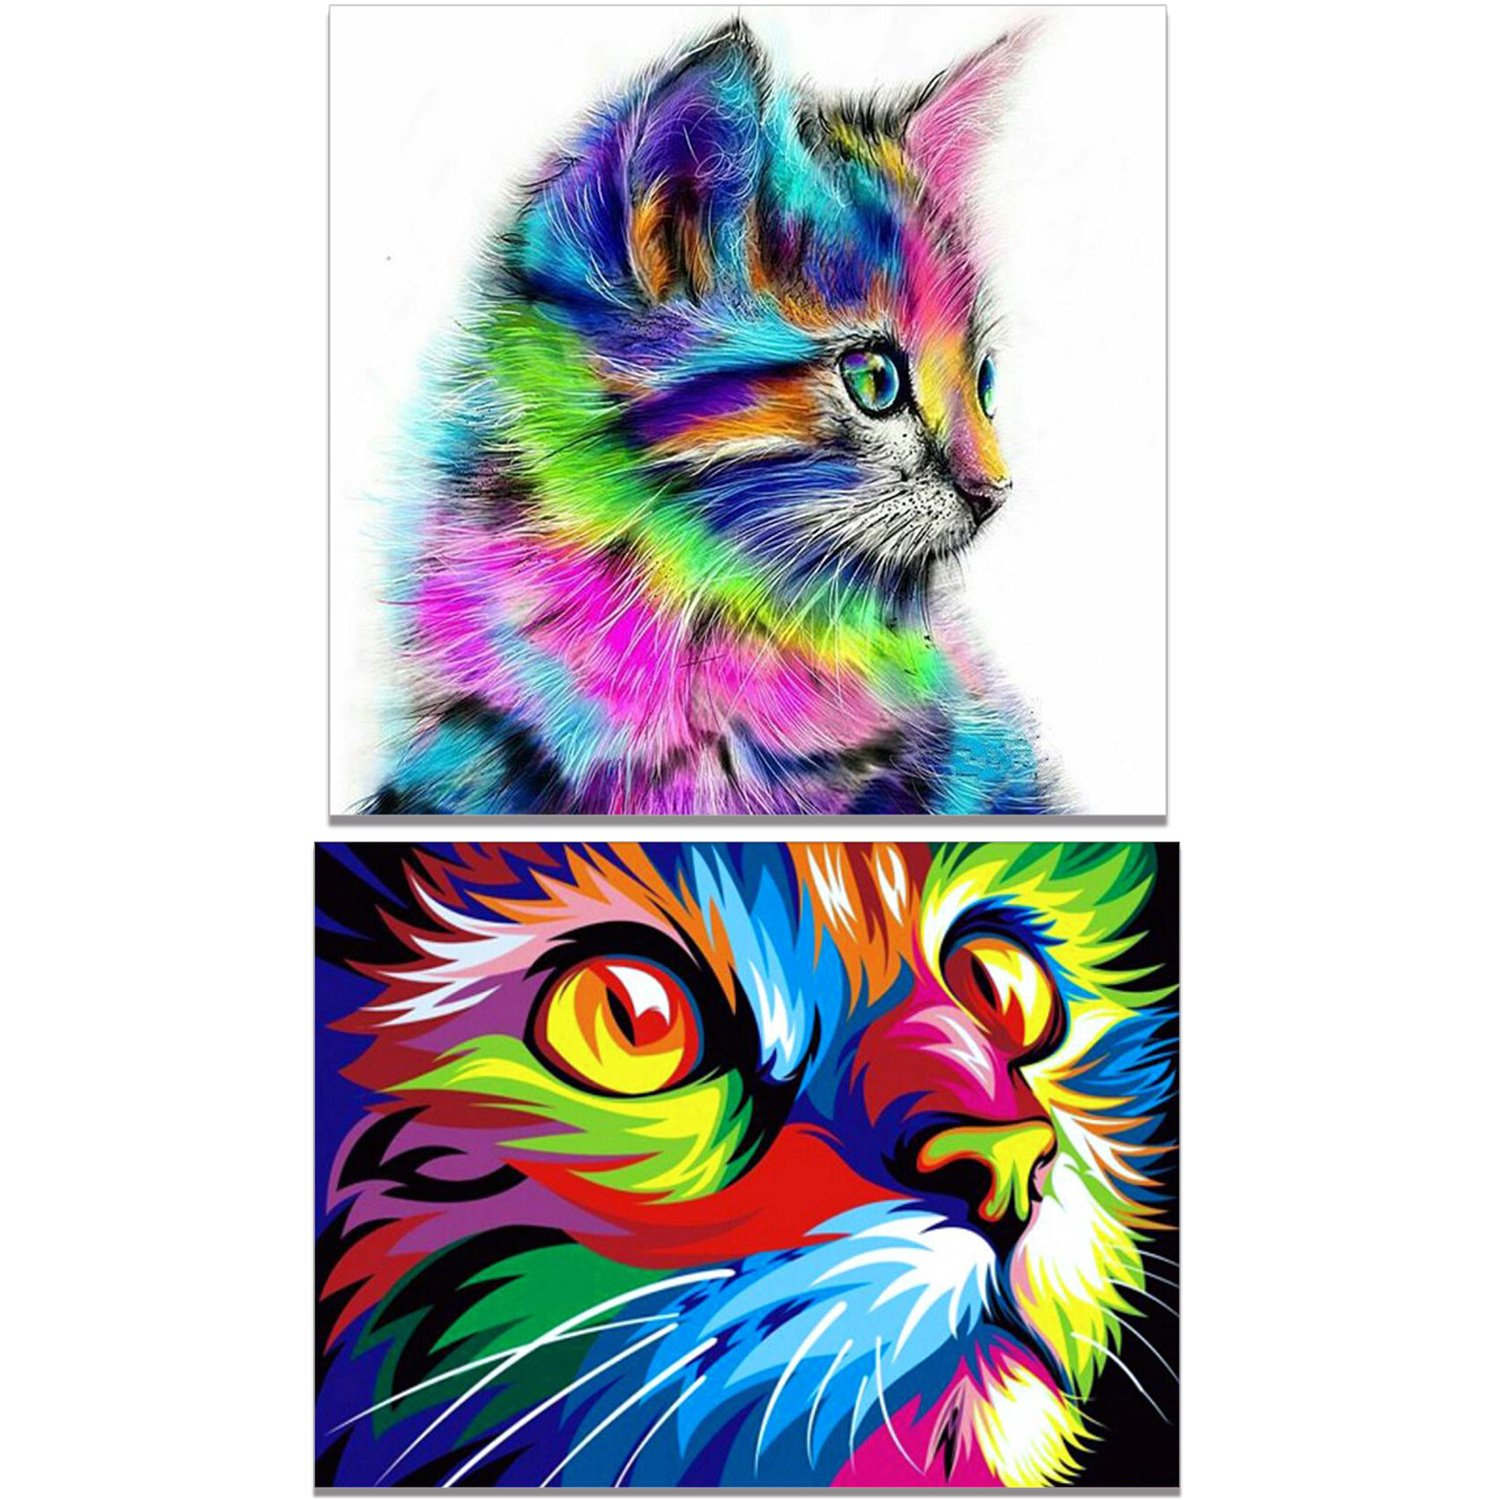 Hestya 2 Sets 5D DIY Diamond Painting Kit Full Drill Cute Cat Crystals Embroidery Tools for Home Decorations Craft 4336864696